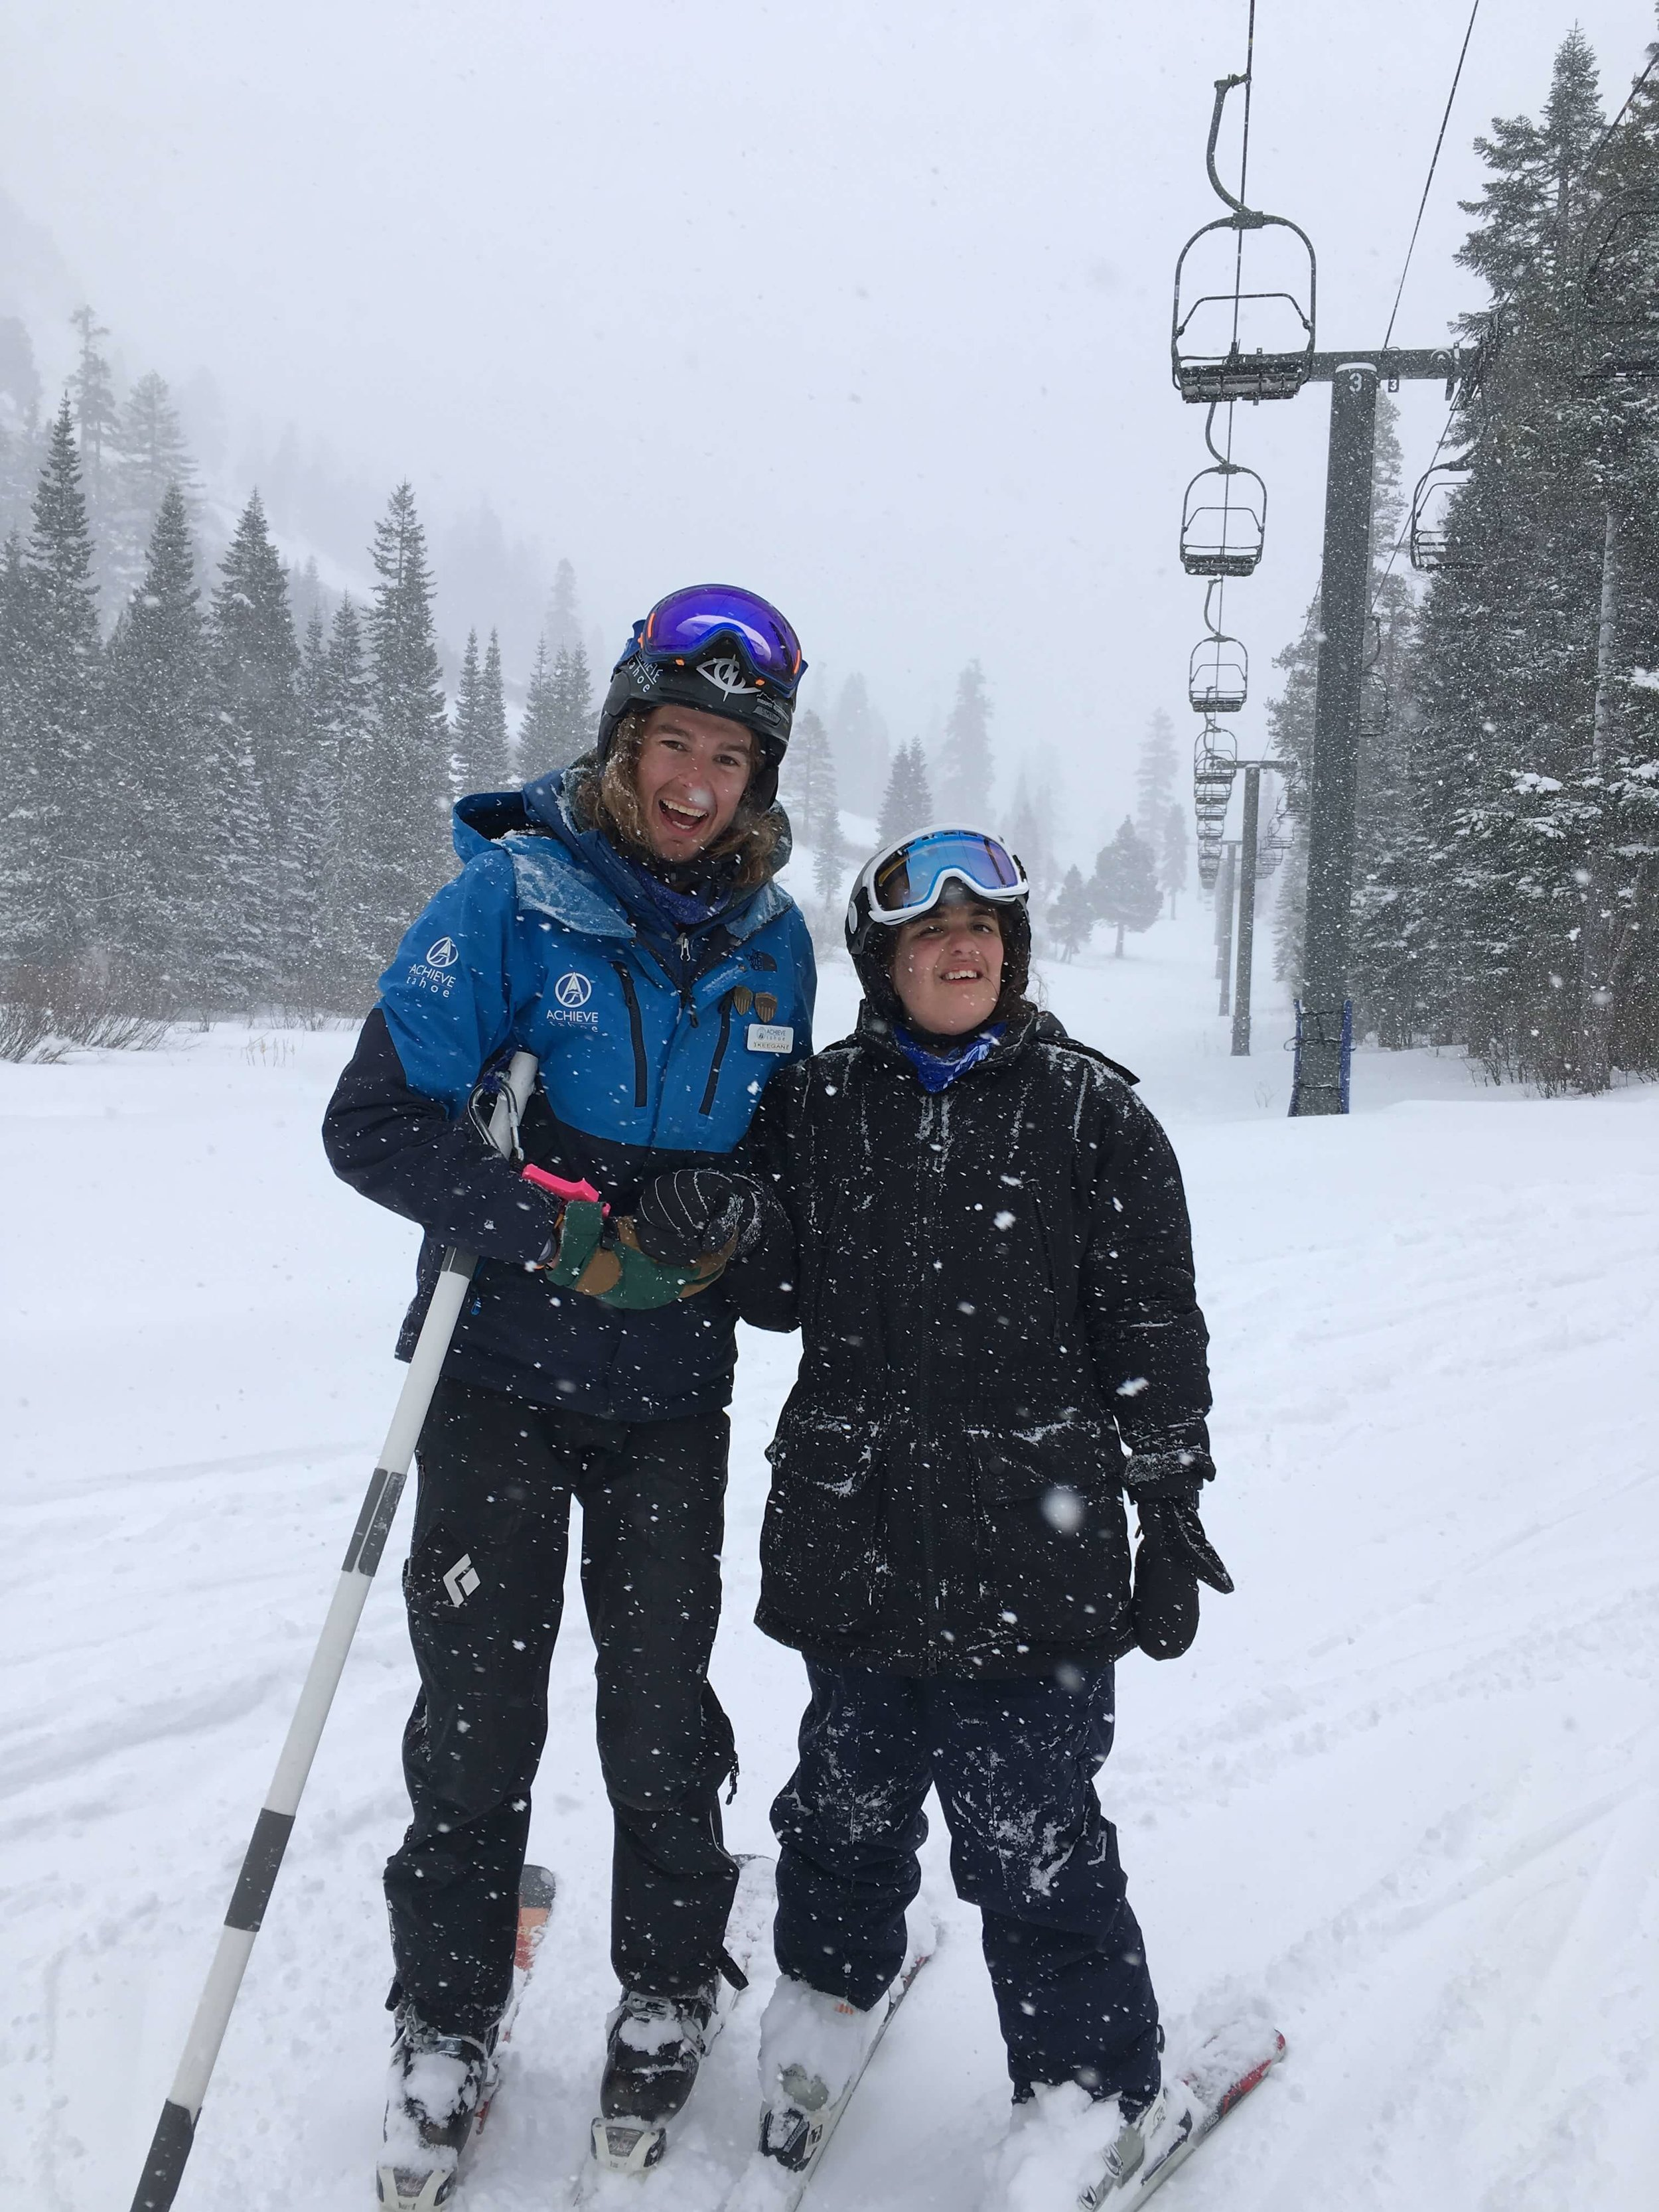 Keegan and Miranda after the 2nd run down the hill.